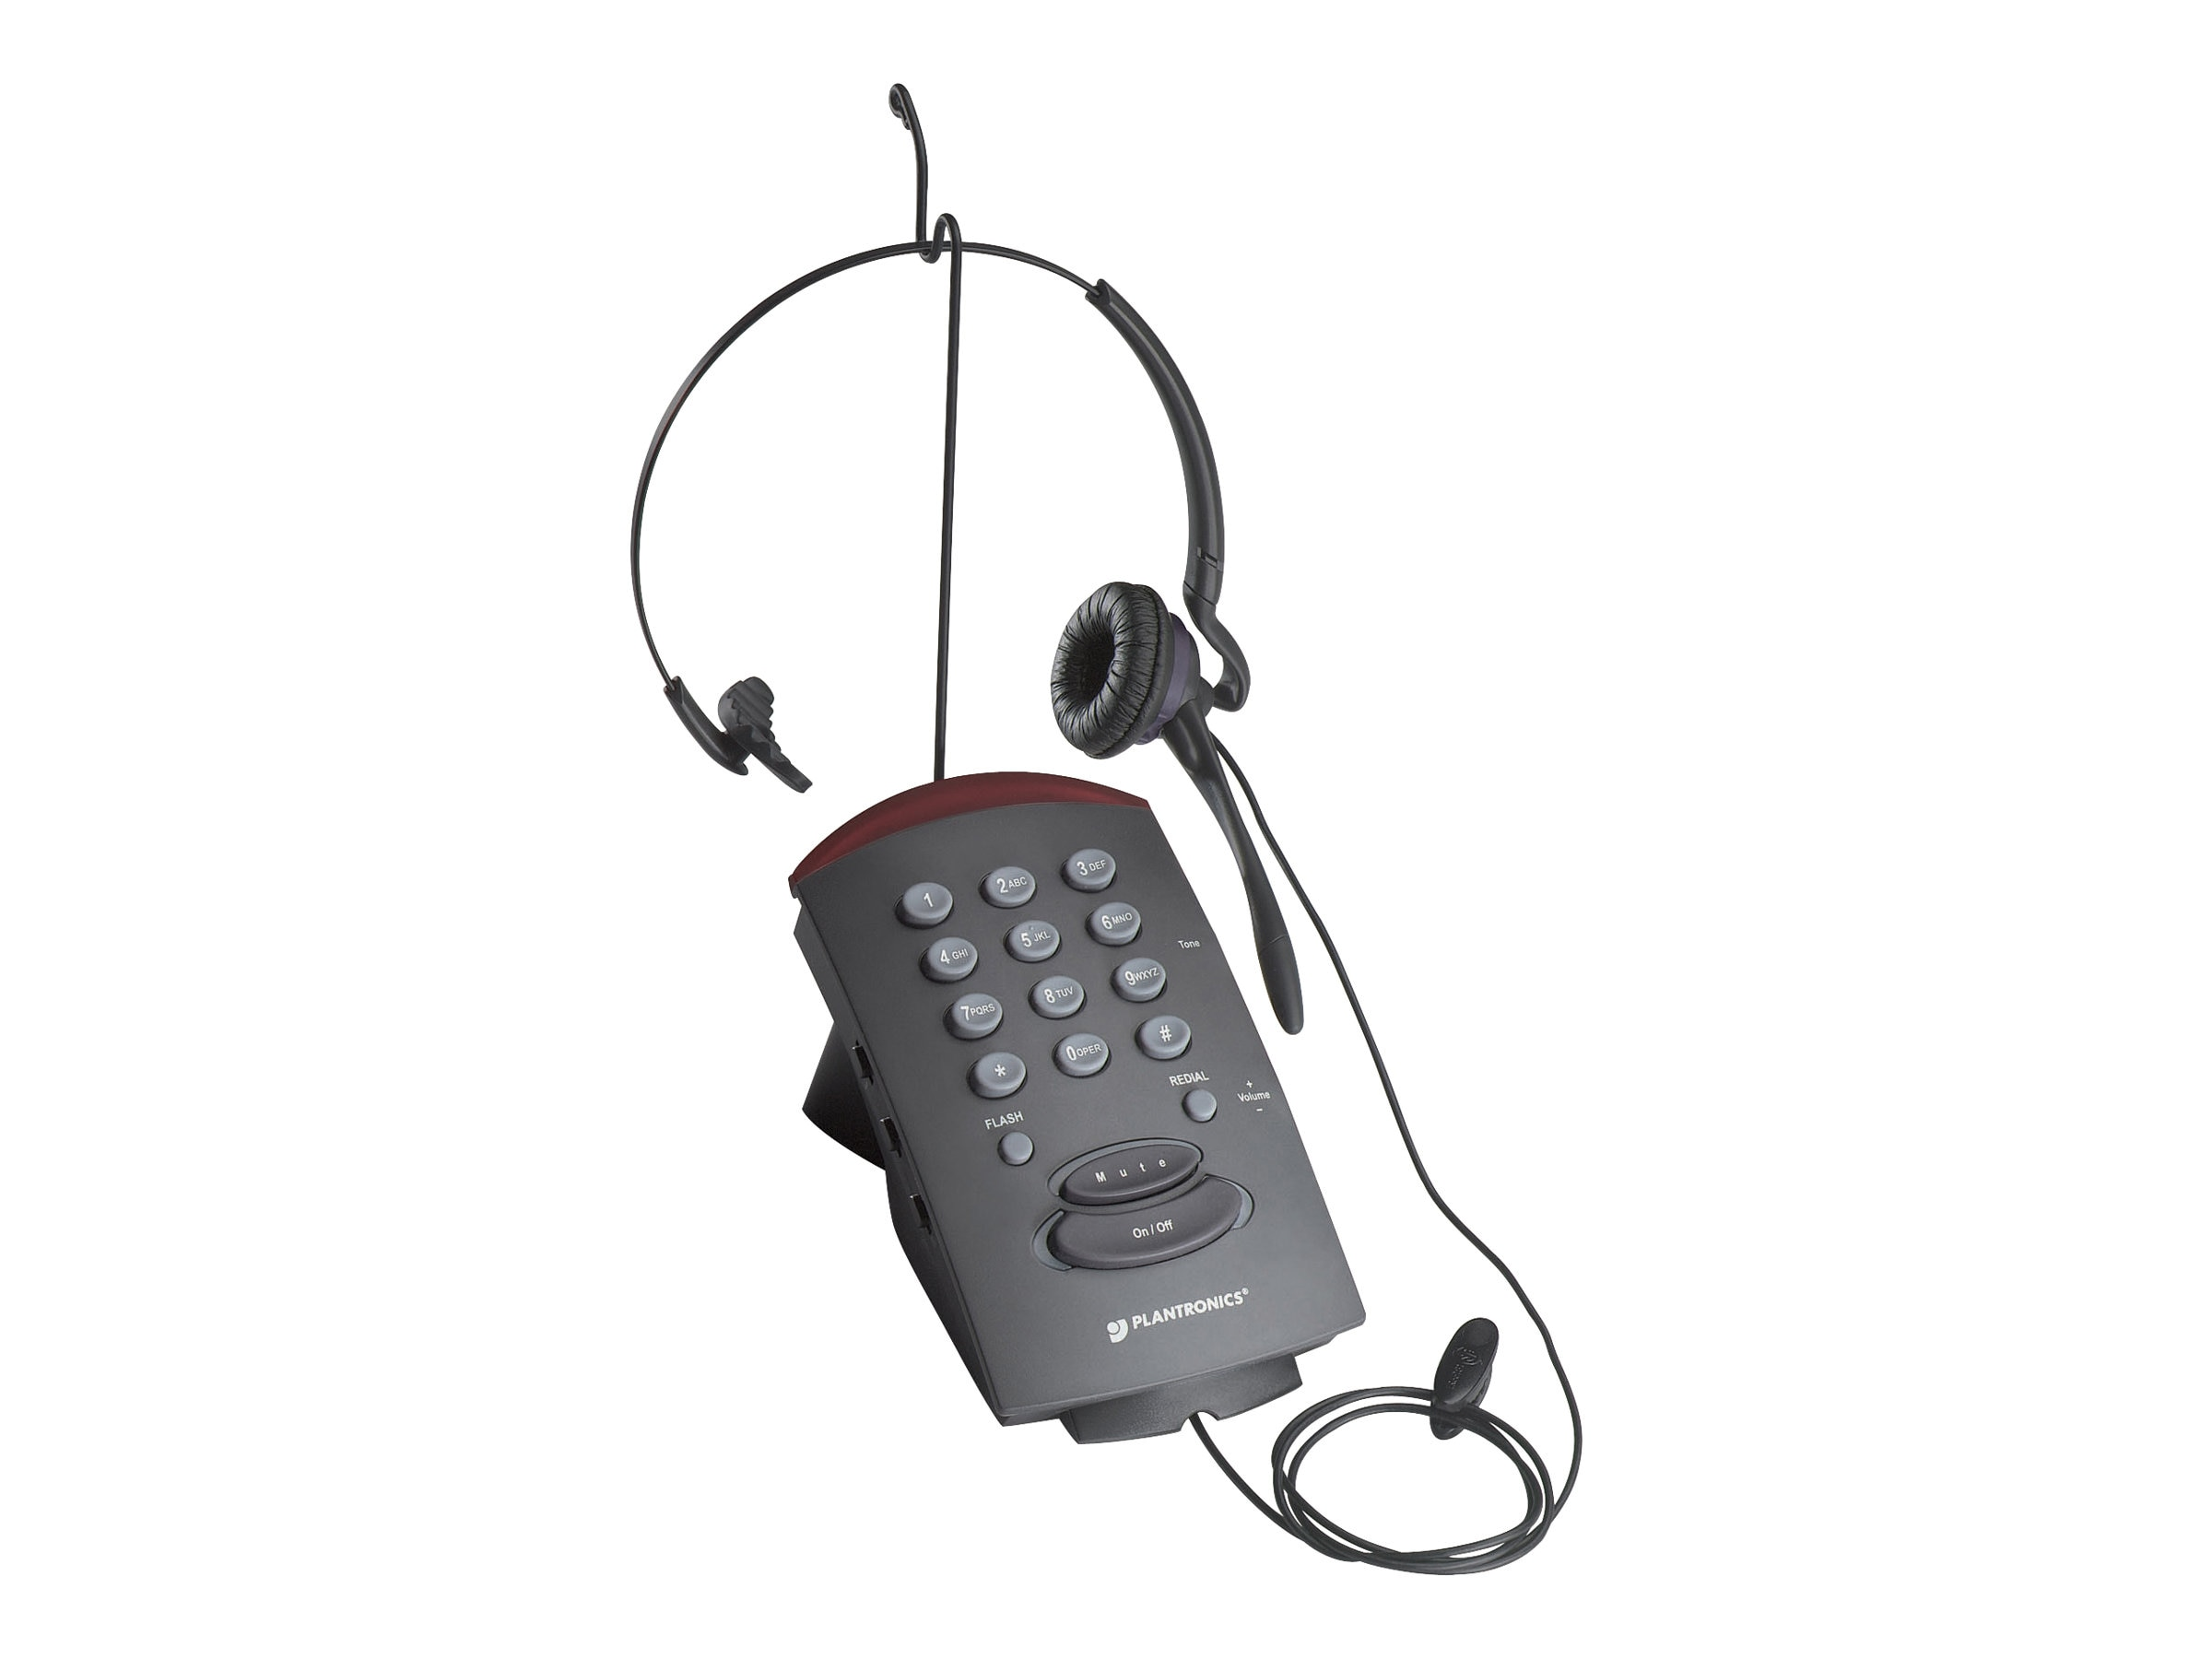 Plantronics Corded Headset Phone, T10, 166498, Phone Accessories